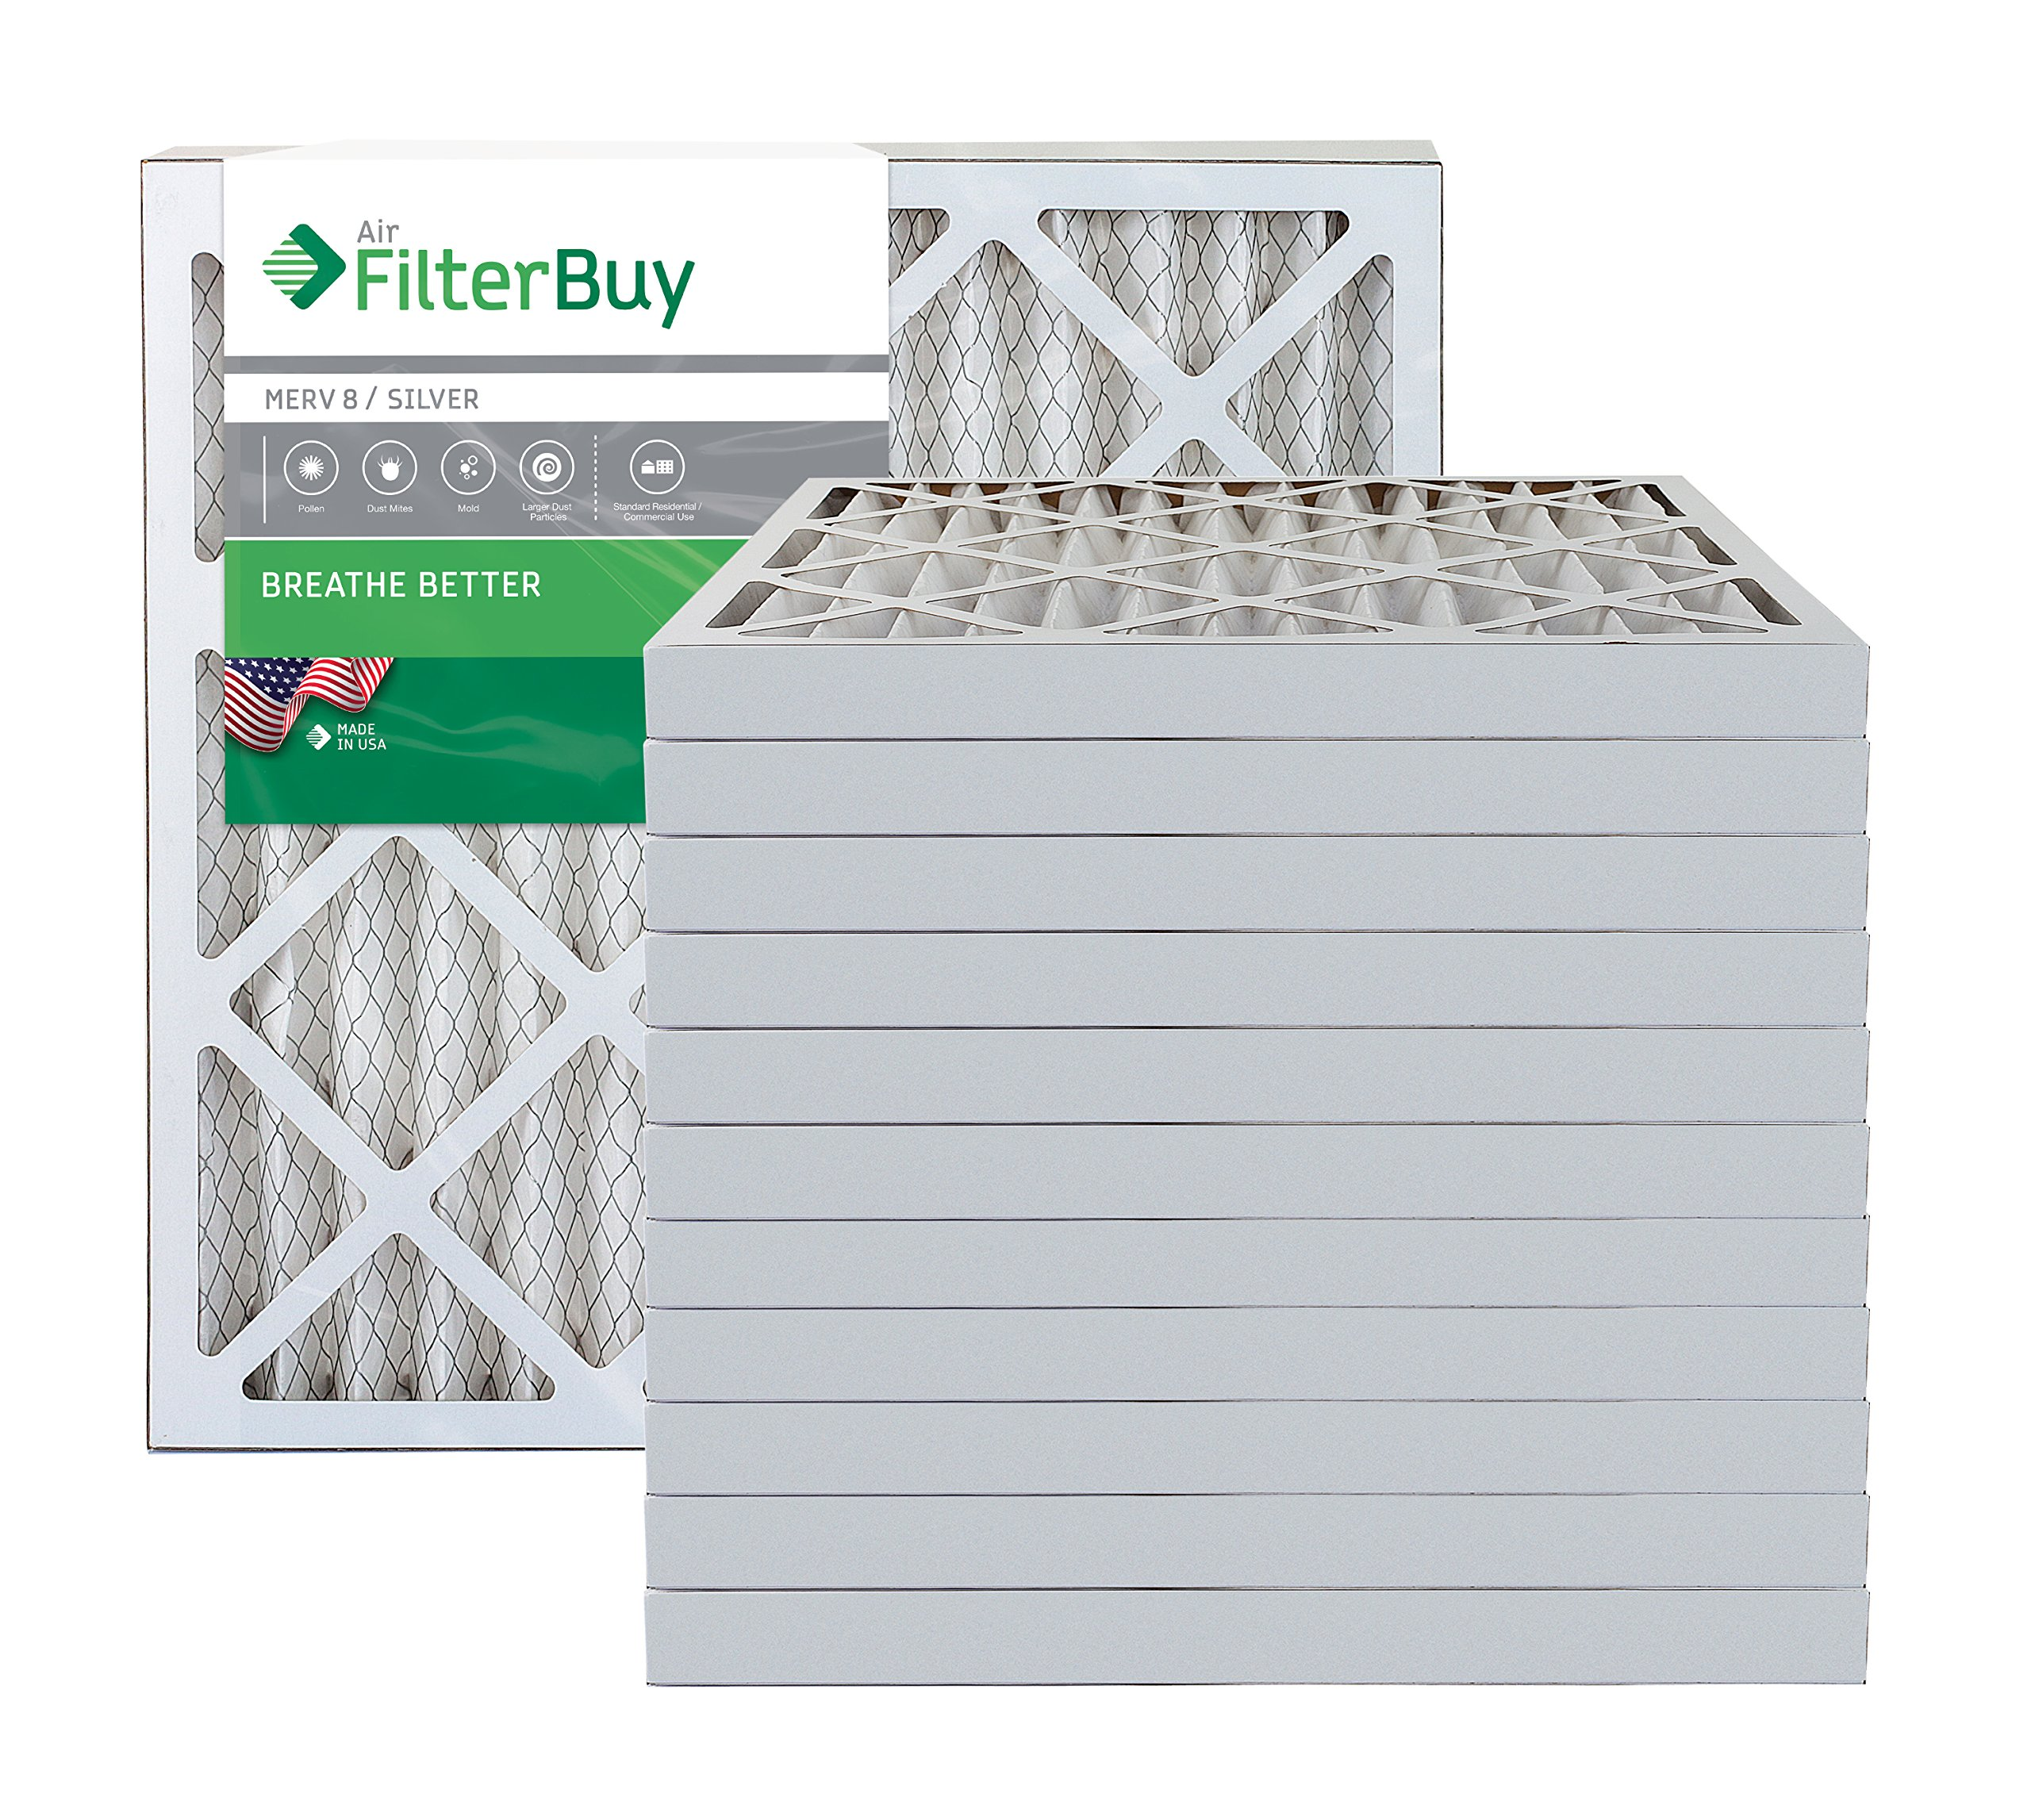 AFB Silver MERV 8 20x20x2 Pleated AC Furnace Air Filter. Pack of 12 Filters. 100% produced in the USA.